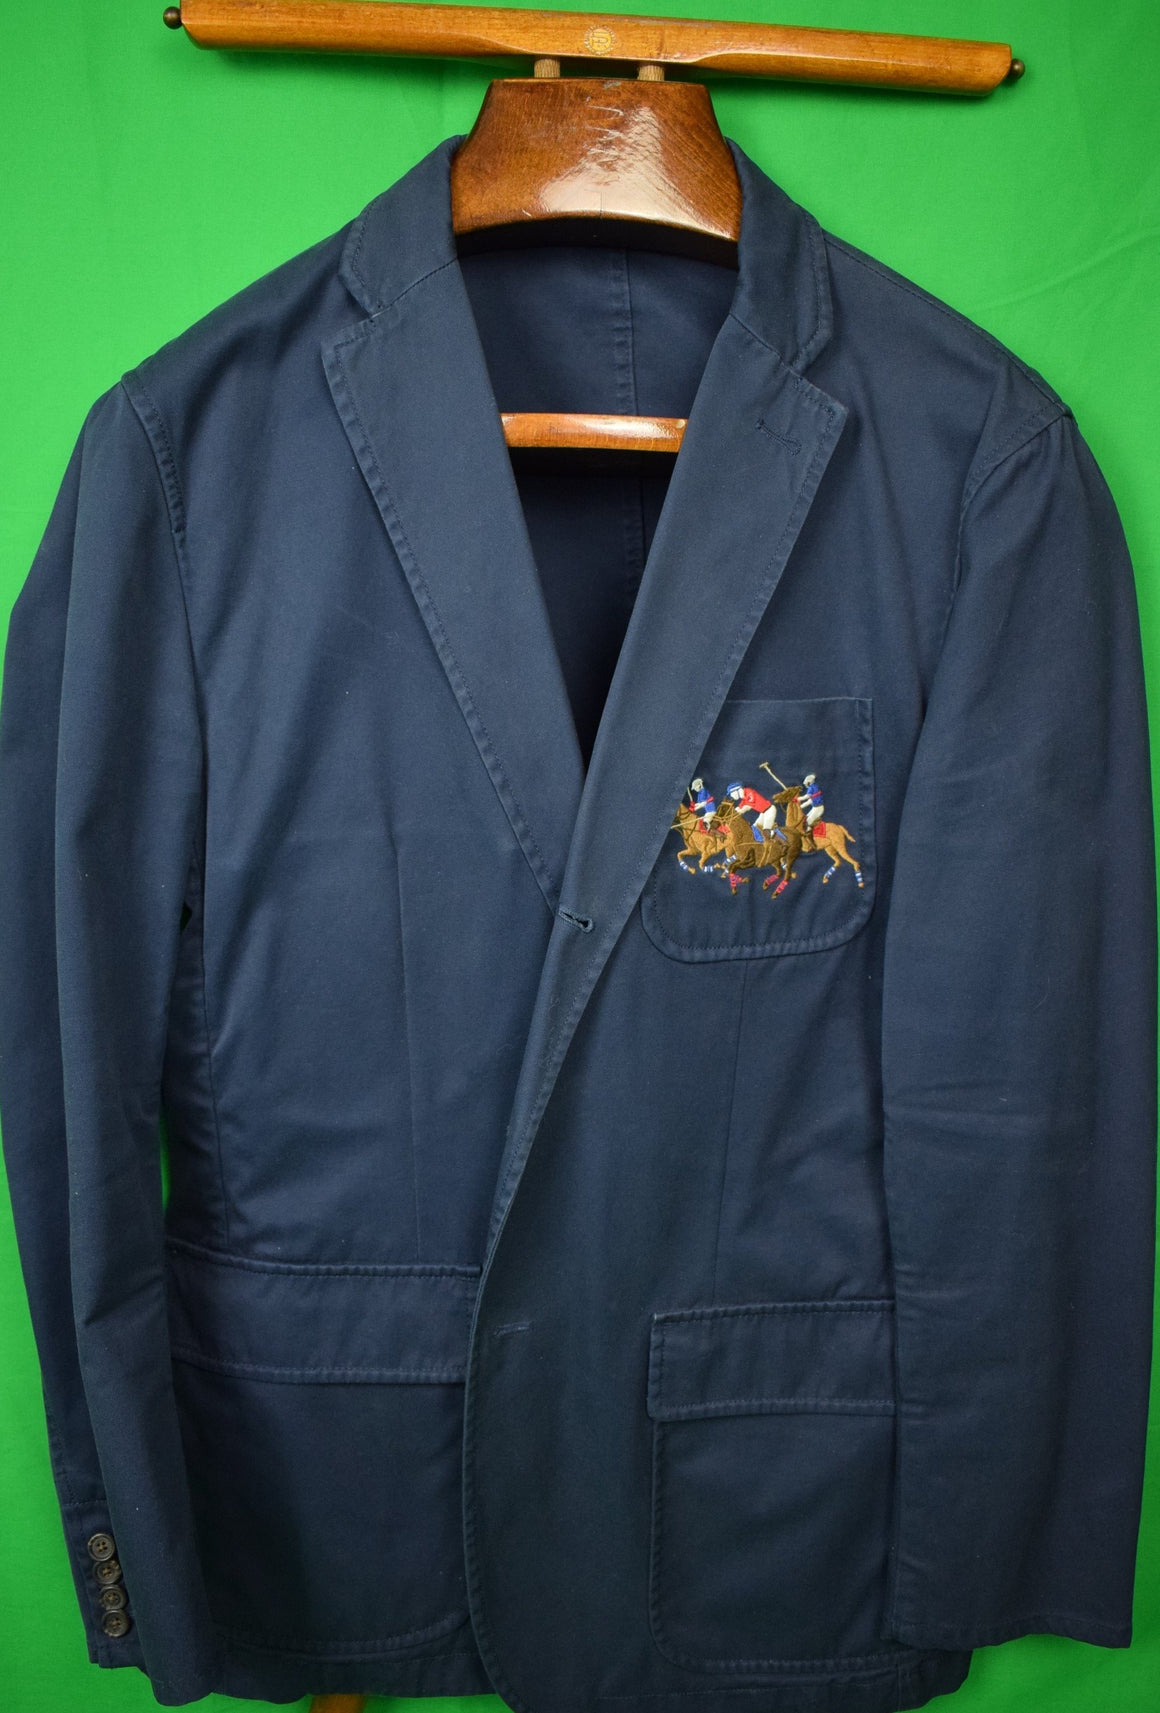 Polo Ralph Lauren Navy Cotton Blazer w/ 3 Emb Polo Players on Breast Pocket